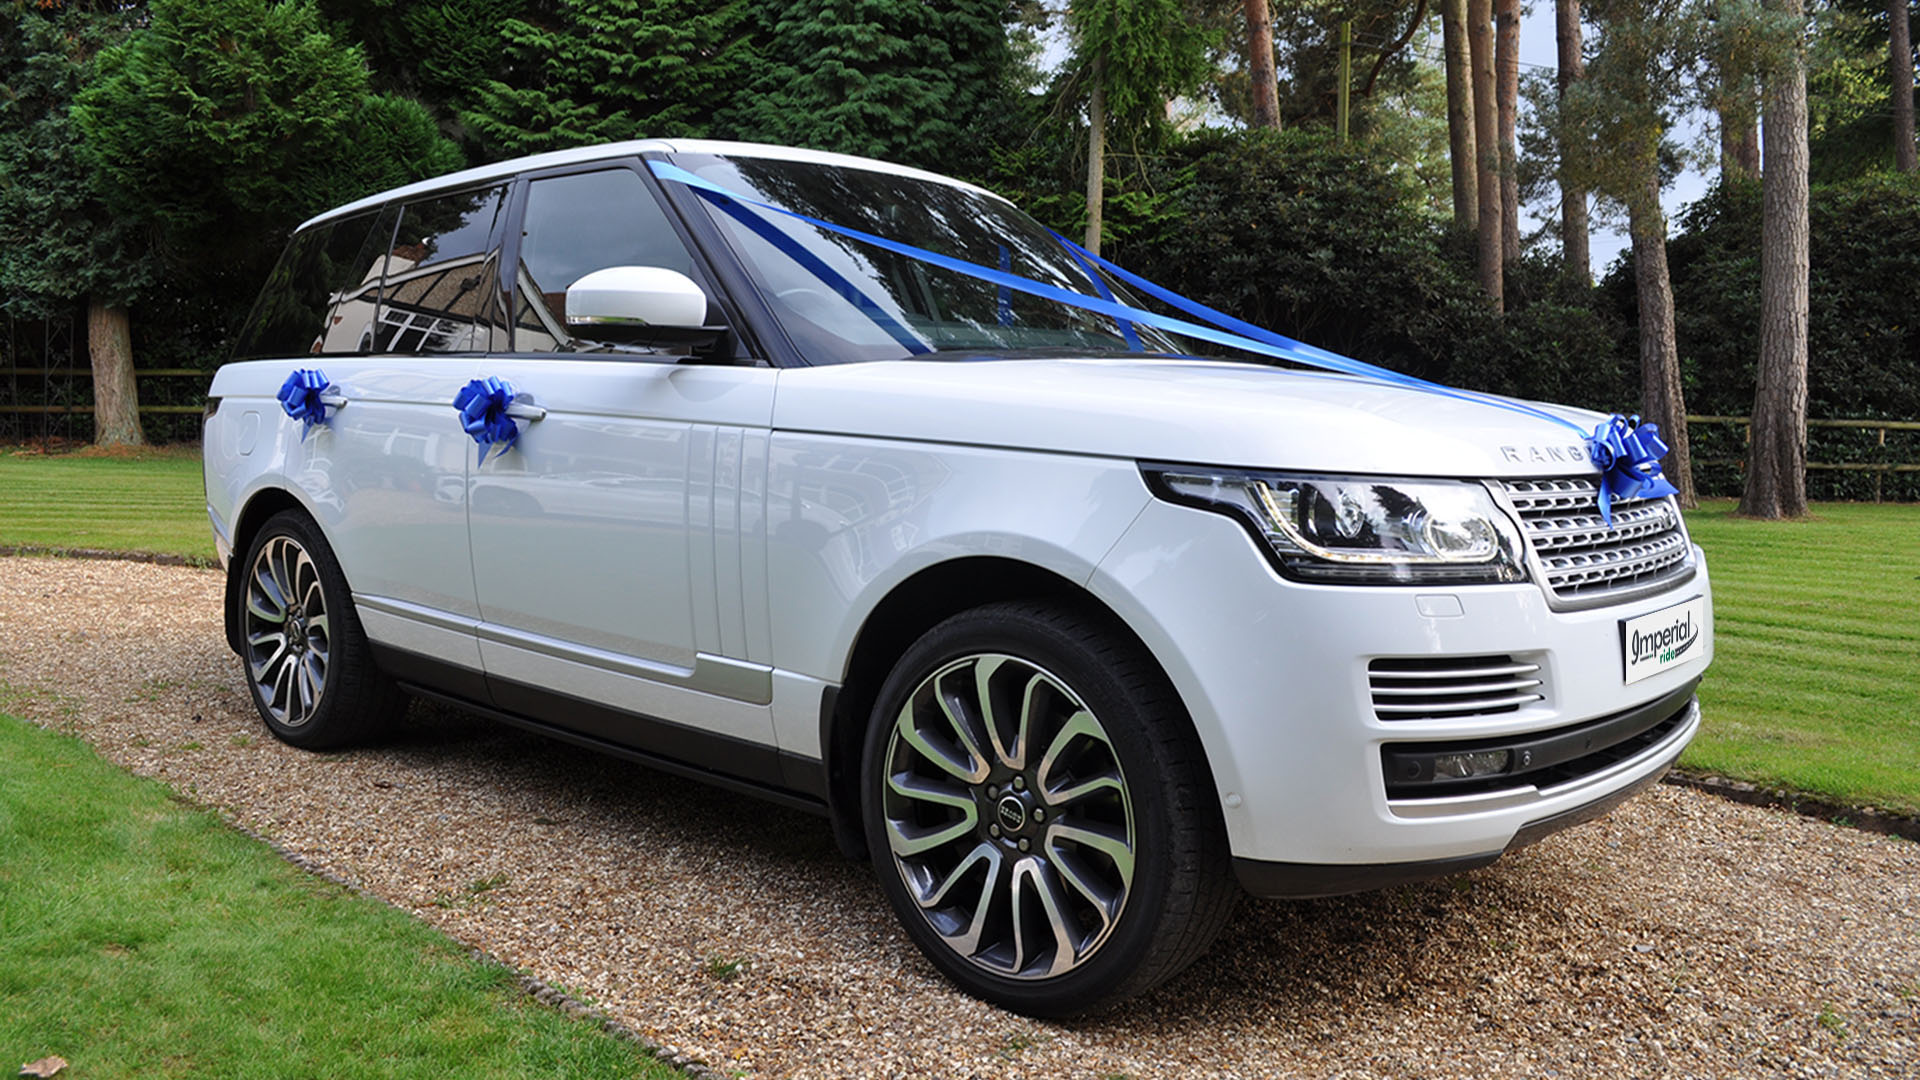 range-rover-wedding-hire-in-camden